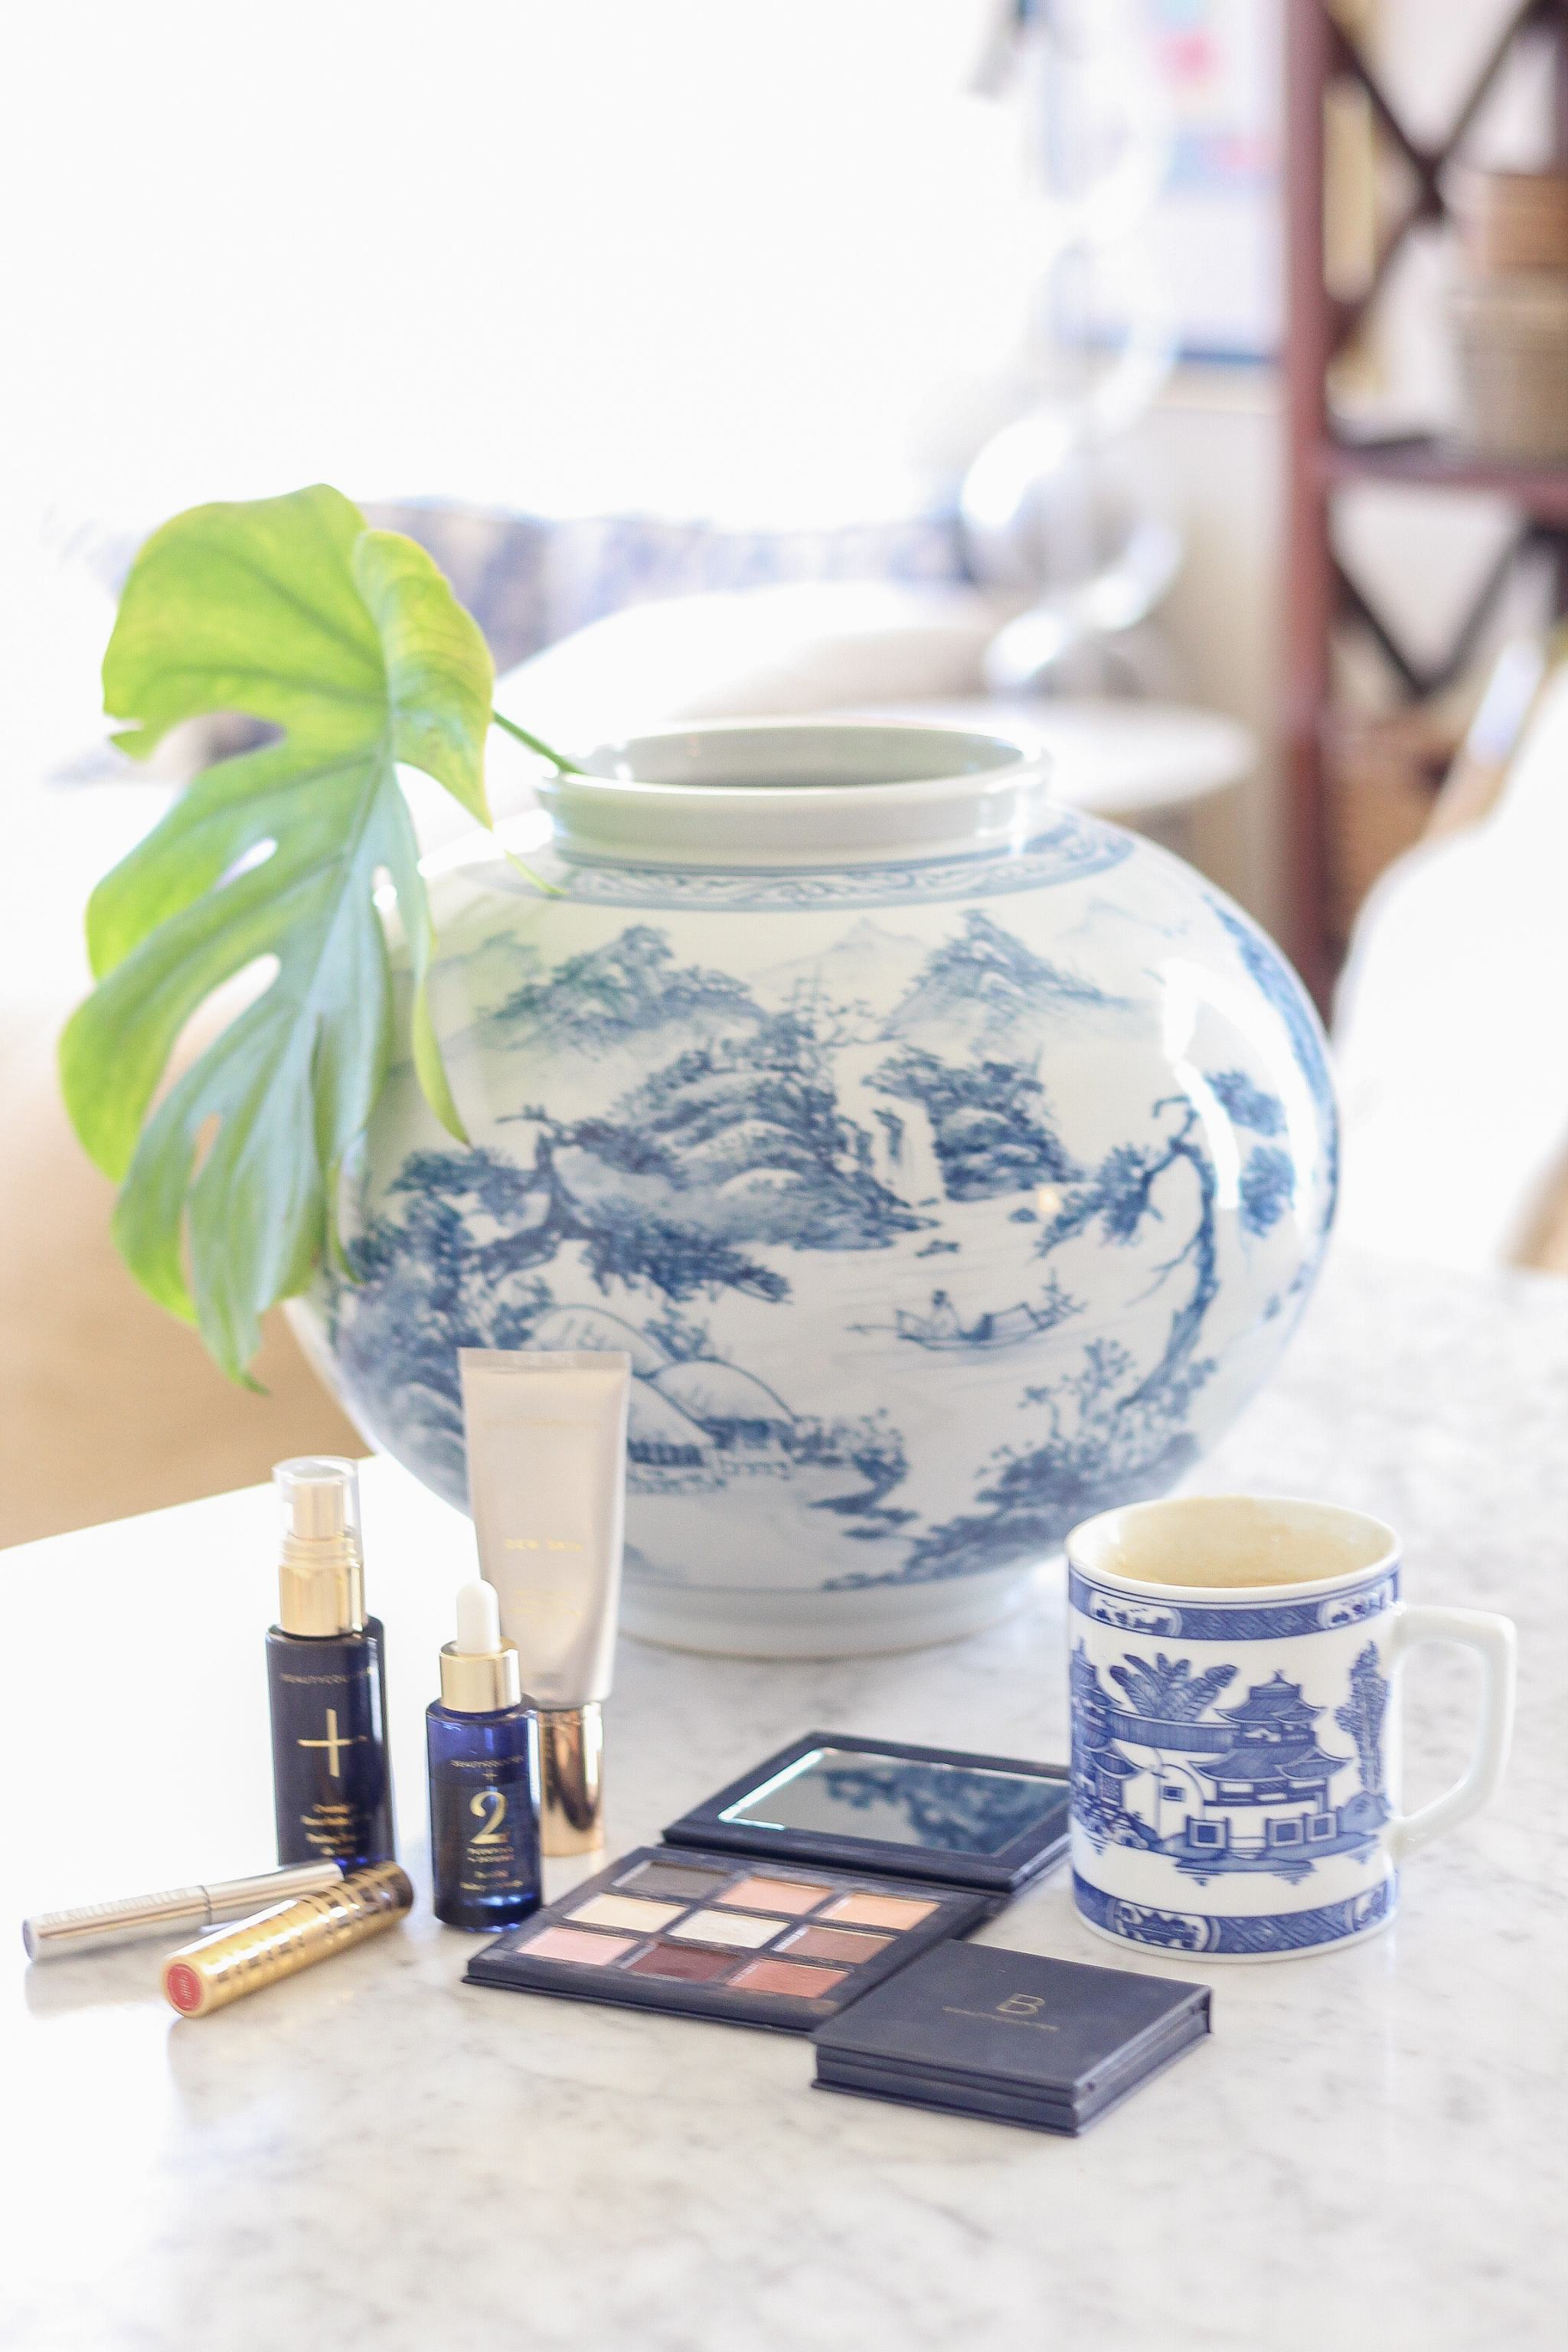 classic style - blue and white dress - living room decor - what it's like to be a beautycounter consultant - being a beautycounter consultant - how do you become a beautycounter consultant - tuckernuck earrings - how much do beautycounter consultants make - clean beauty - better beauty - preppy style - blue and white pottery - blue willow